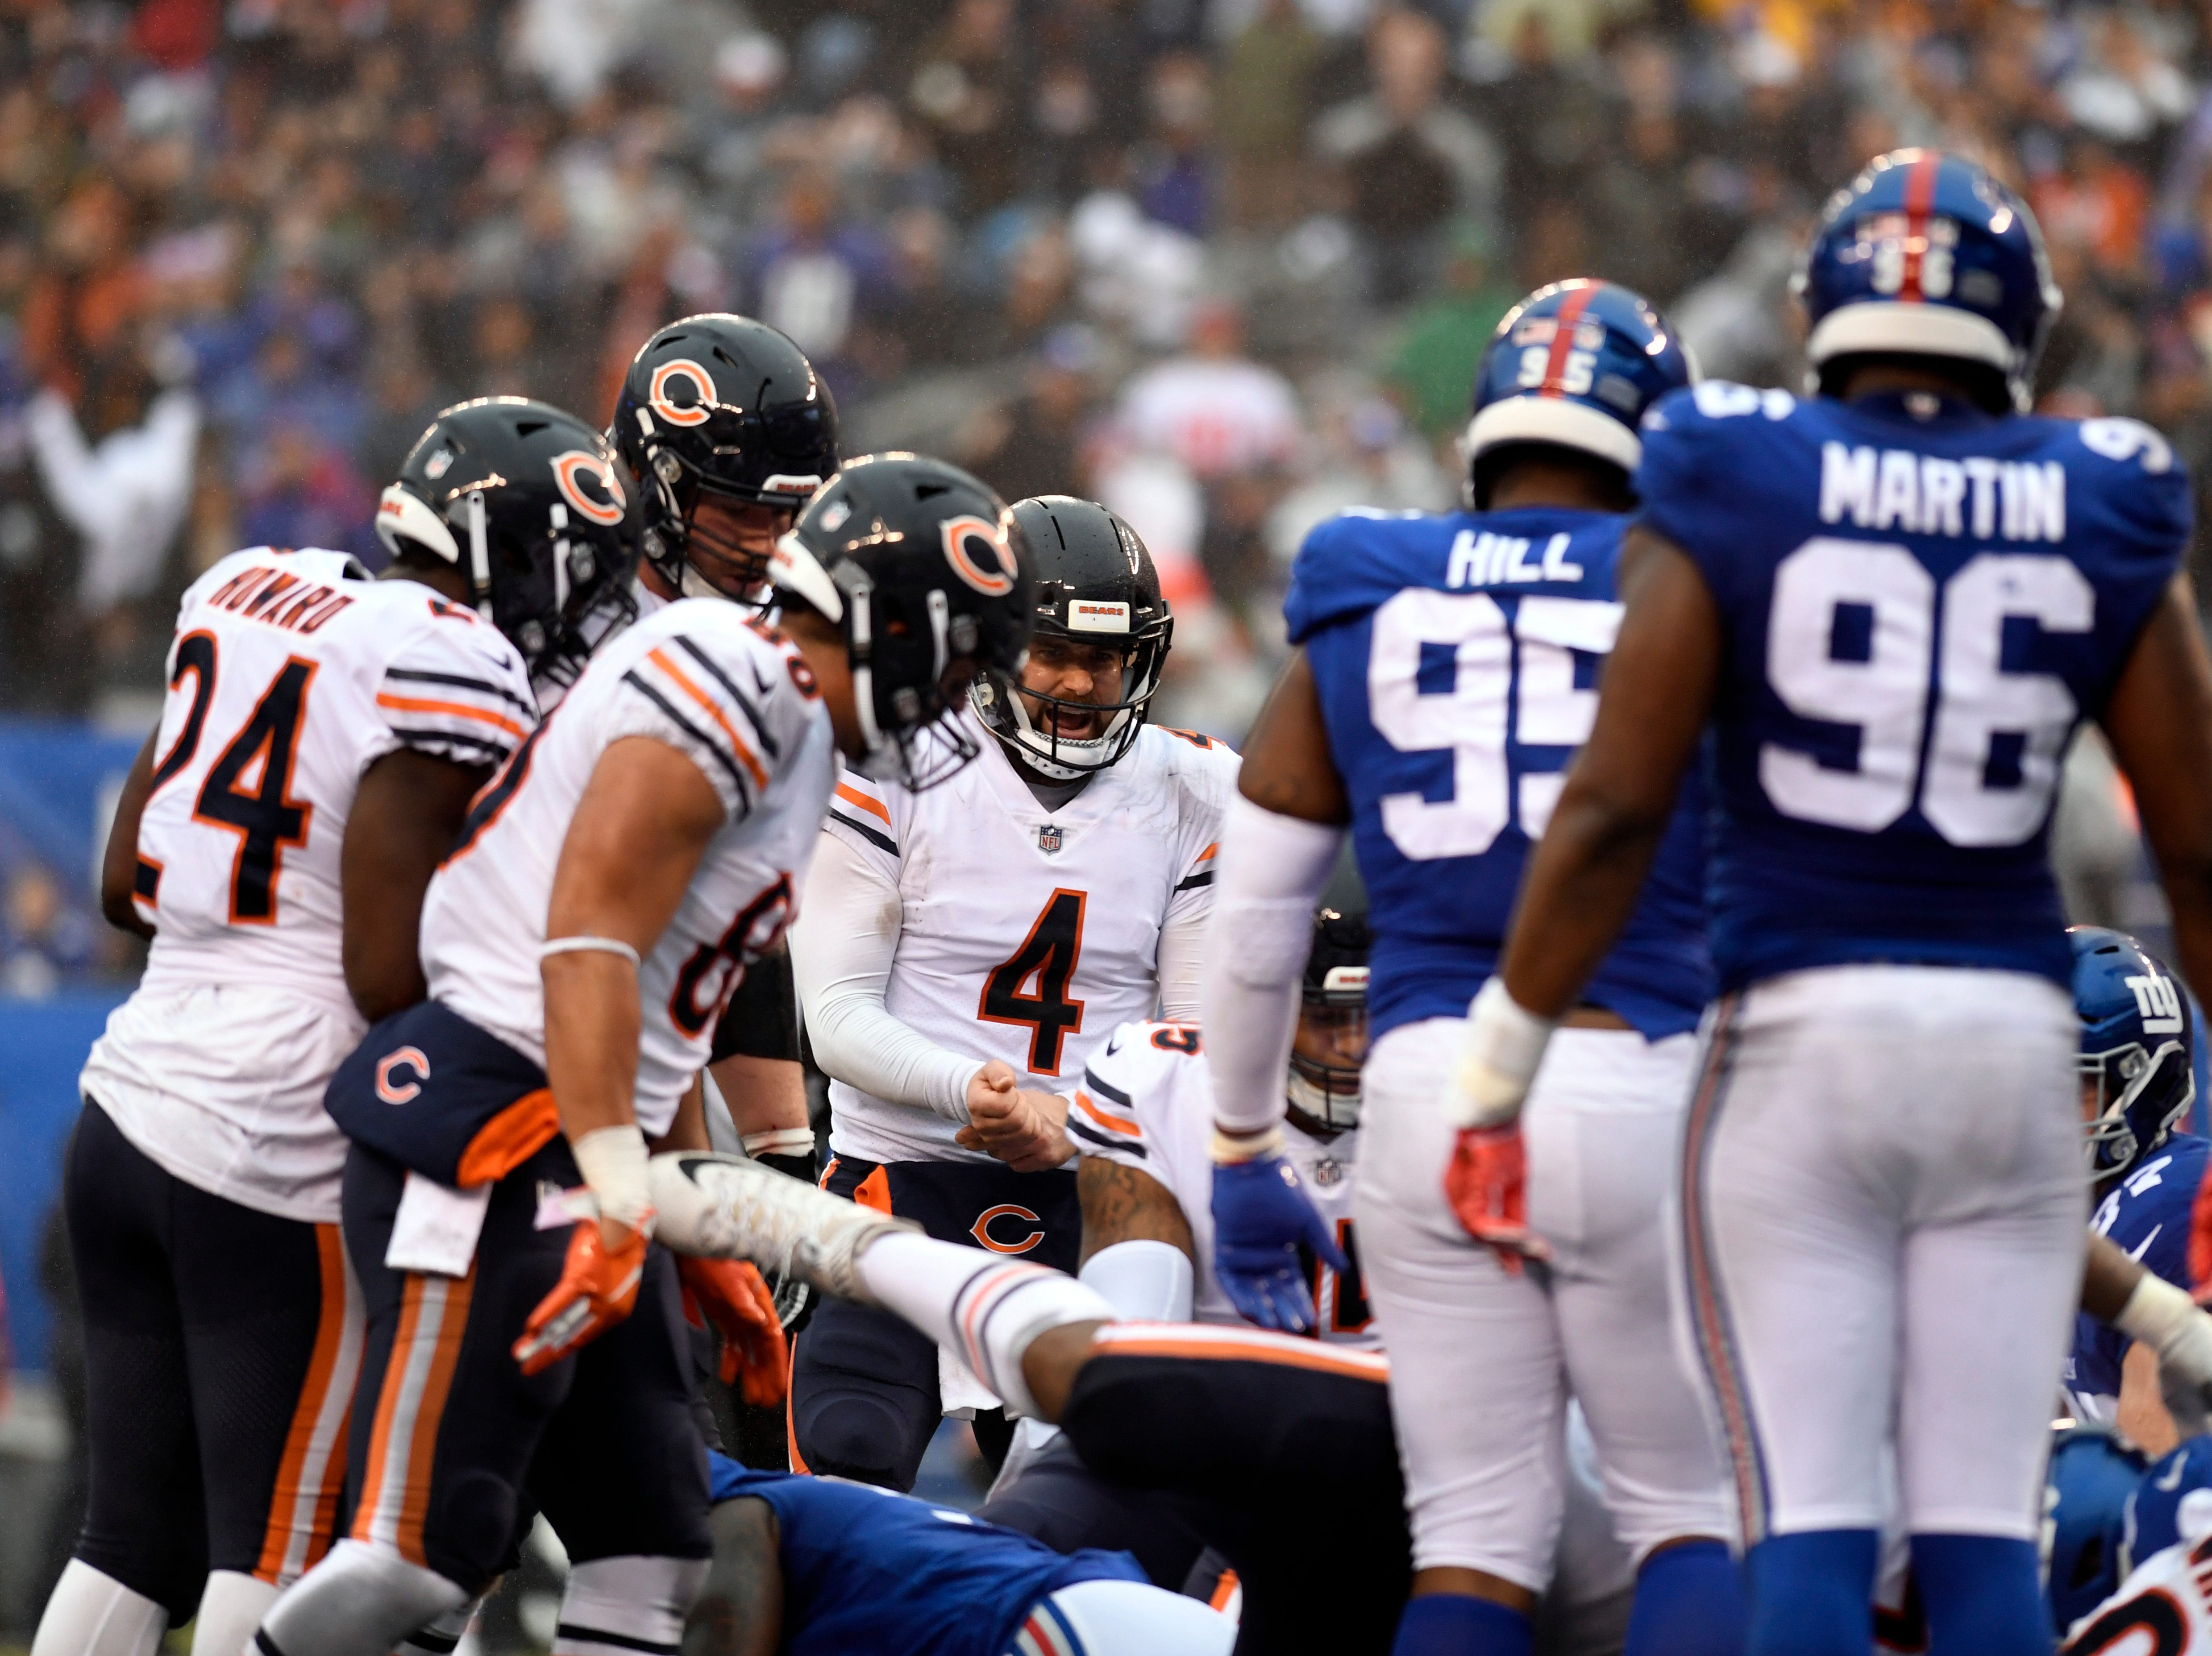 Chicago Bears quarterback Chase Daniel (4) celebrates a touchdown in the first half. The New York Giants face the Chicago Bears on Sunday, Dec. 2, 2018, in East Rutherford.